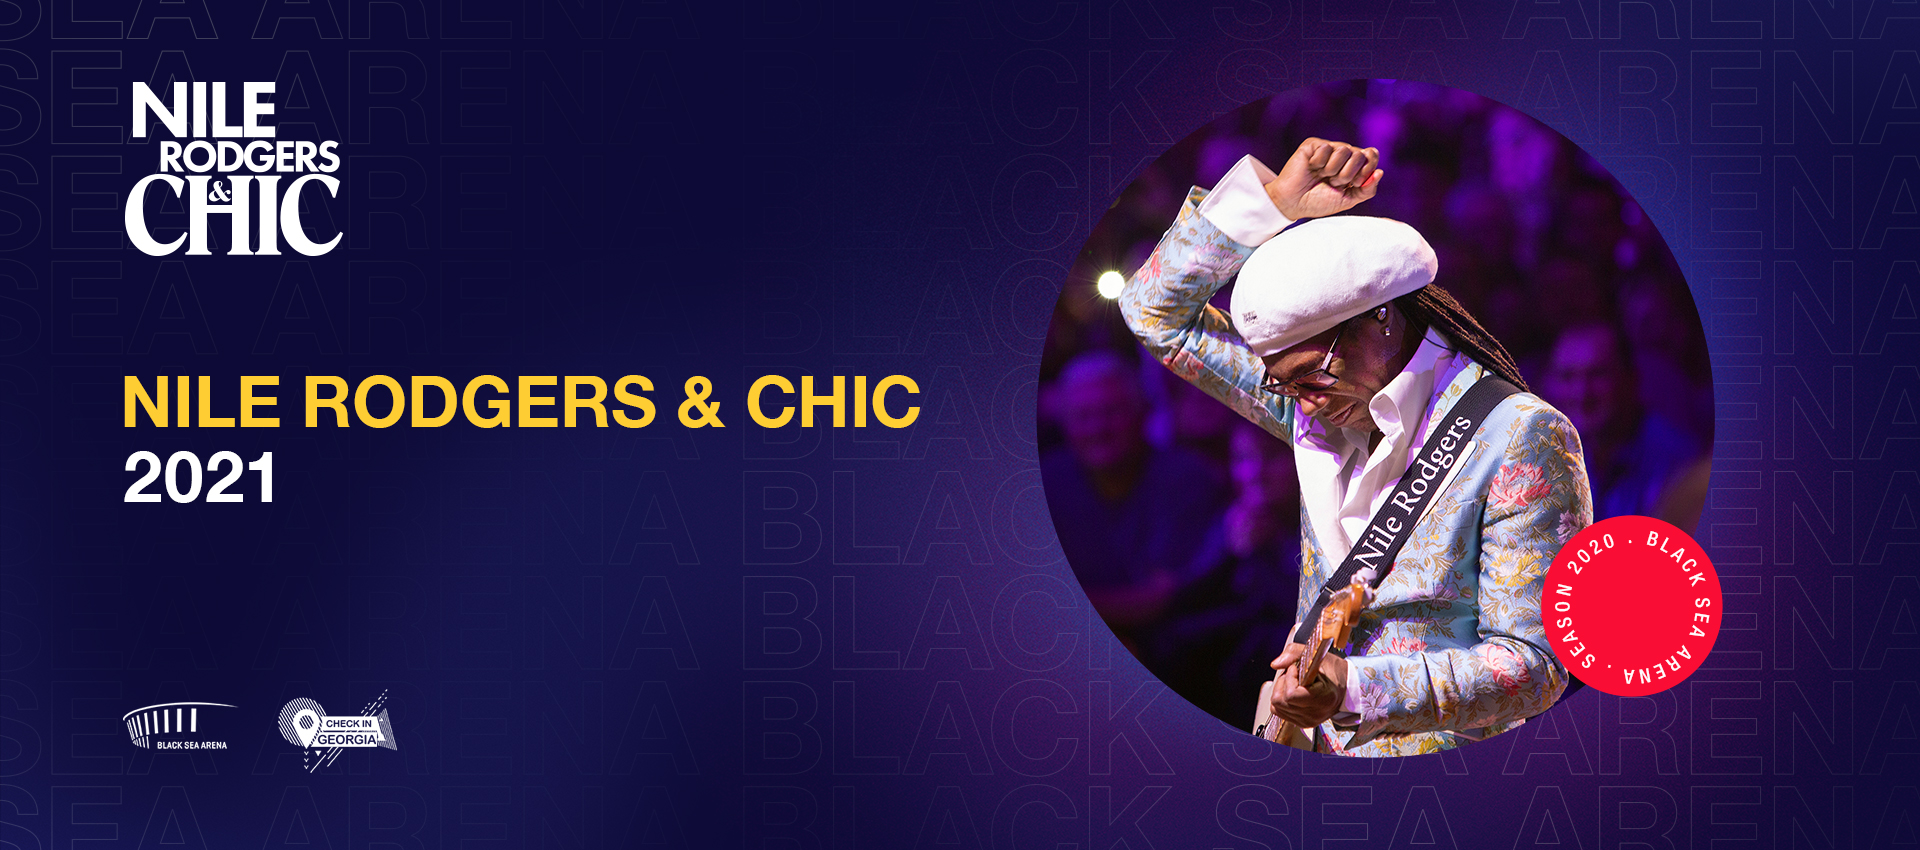 https://bsa.ge/NILE RODGERS & CHIC